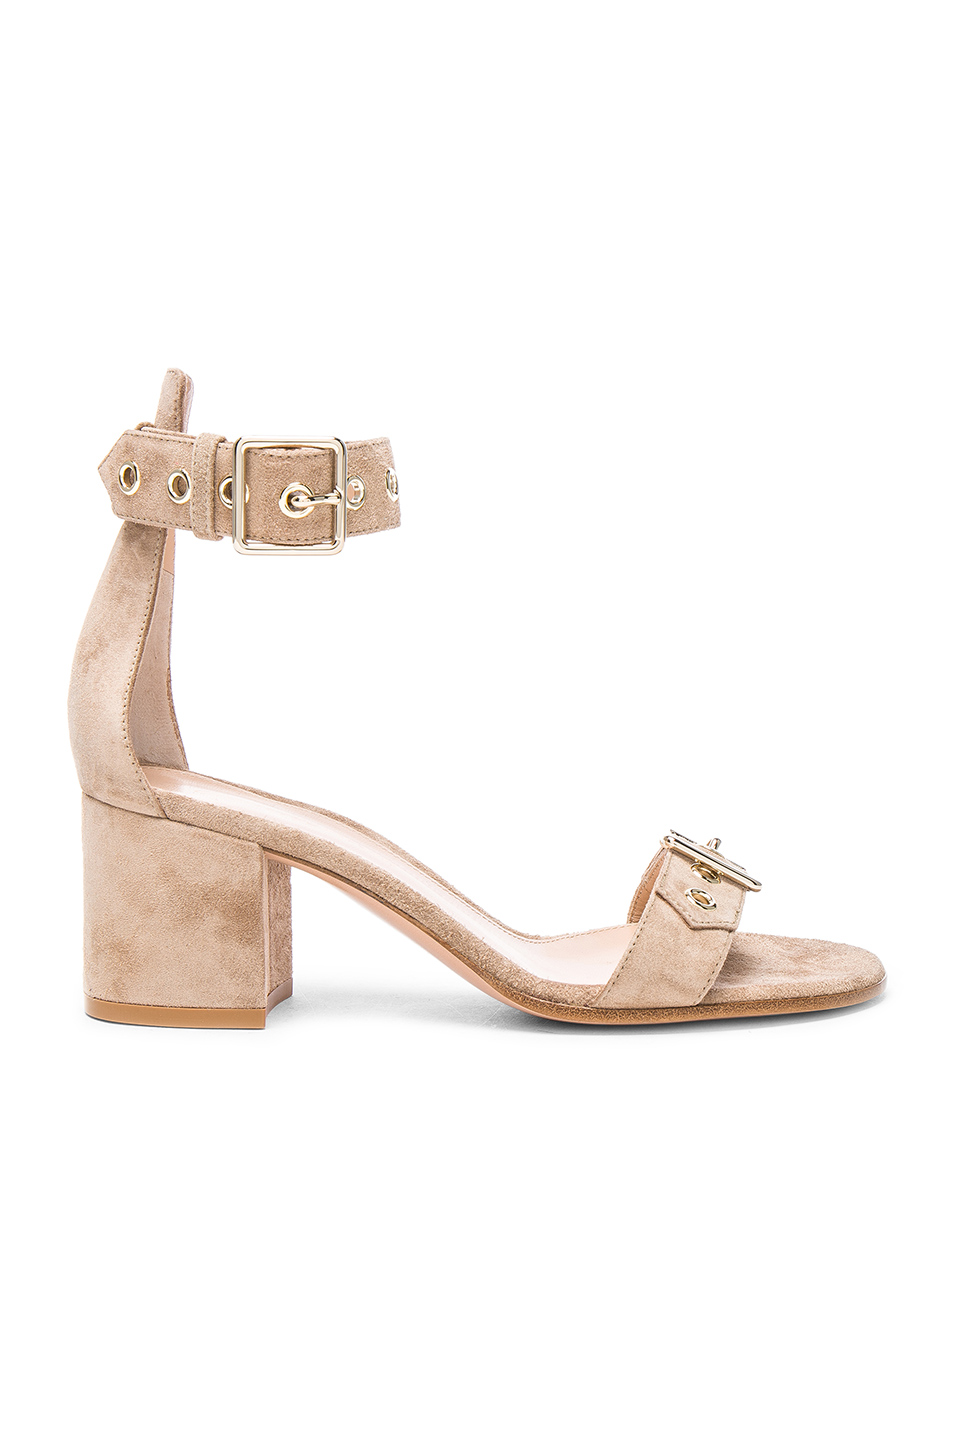 Gianvito Rossi Suede Hayes Buckle Detail Sandals in Neutrals